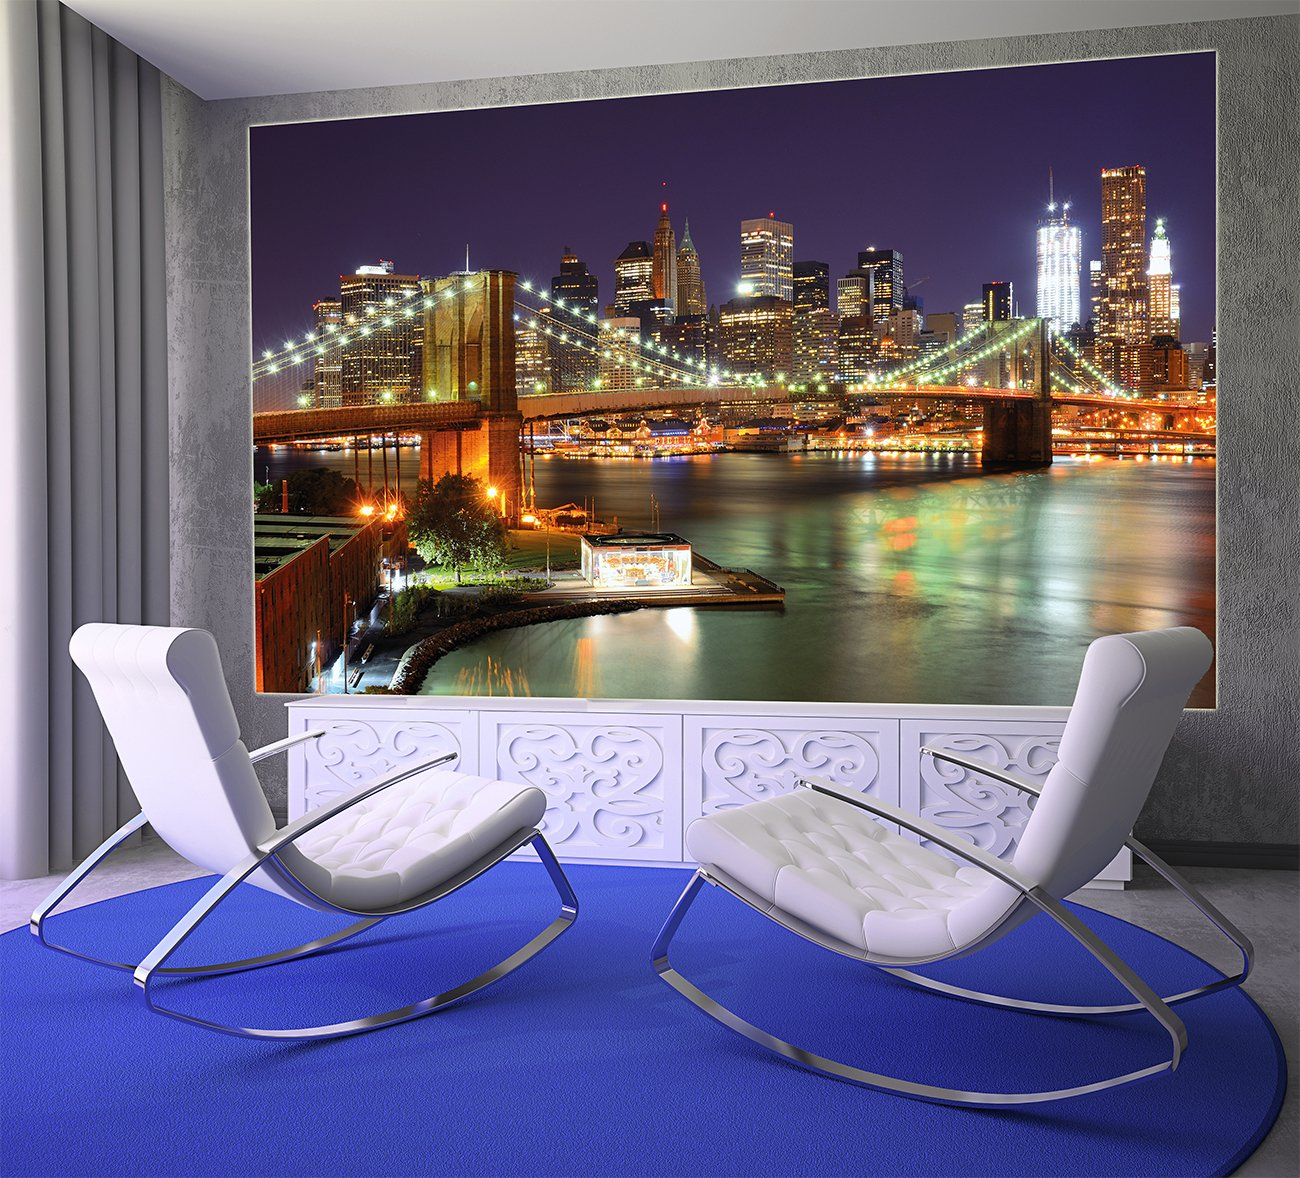 Wallpaper New York Mural Decoration Brooklyn Bridge at Night Glowing Skyscraper Skyline Wall Street USA Decoration I paperhanging Wallpaper poster wall decor by GREAT ART 132.3 Inch x 93.7 Inch